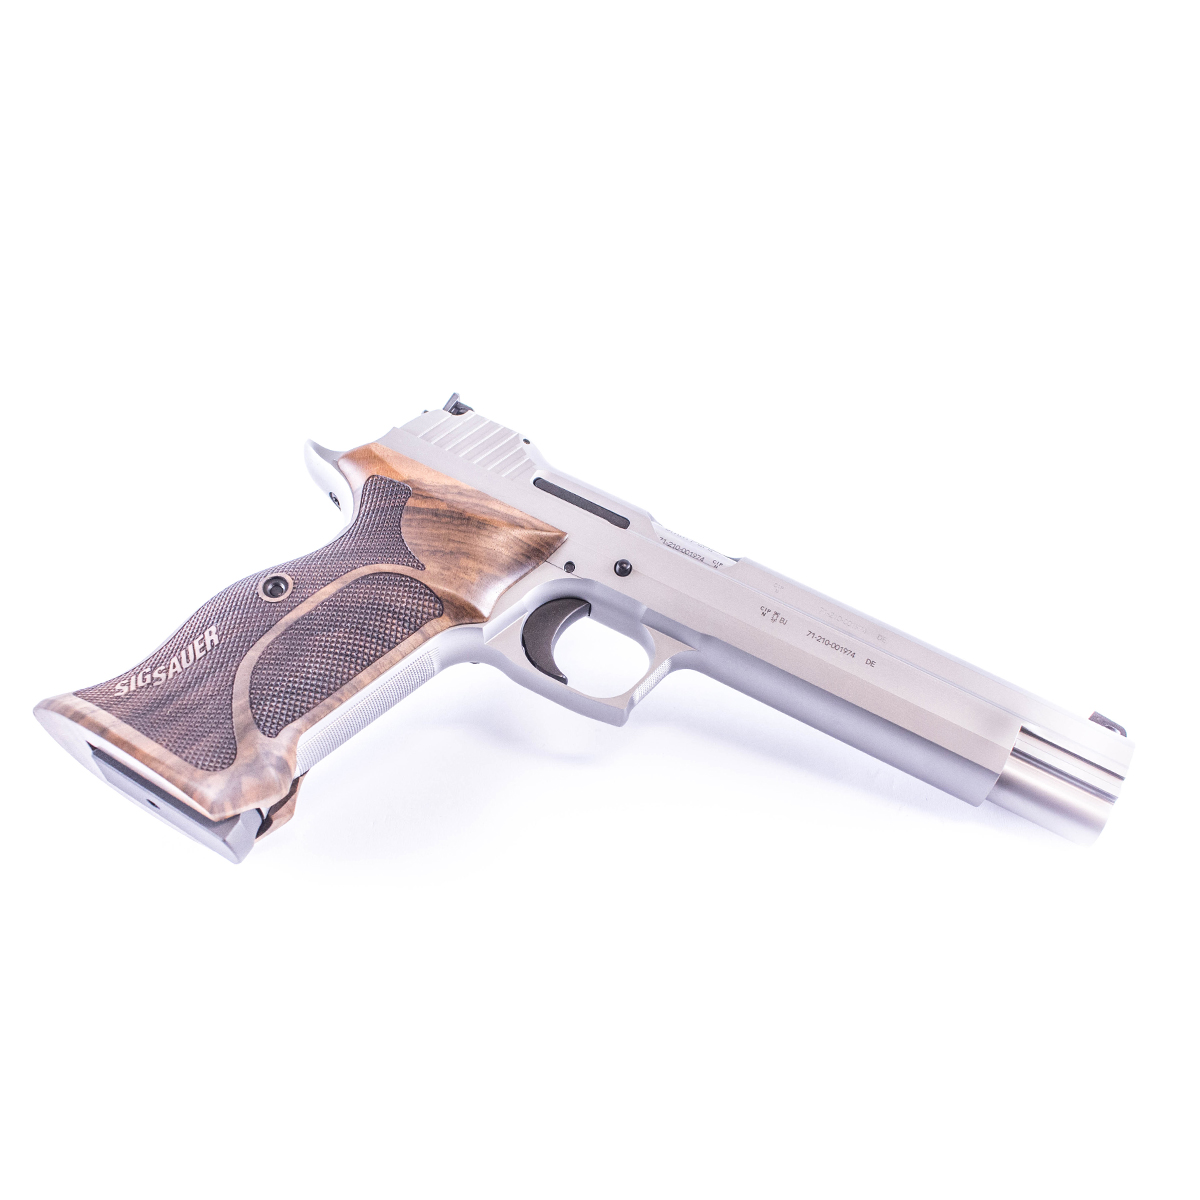 0534_sig_target_stainless